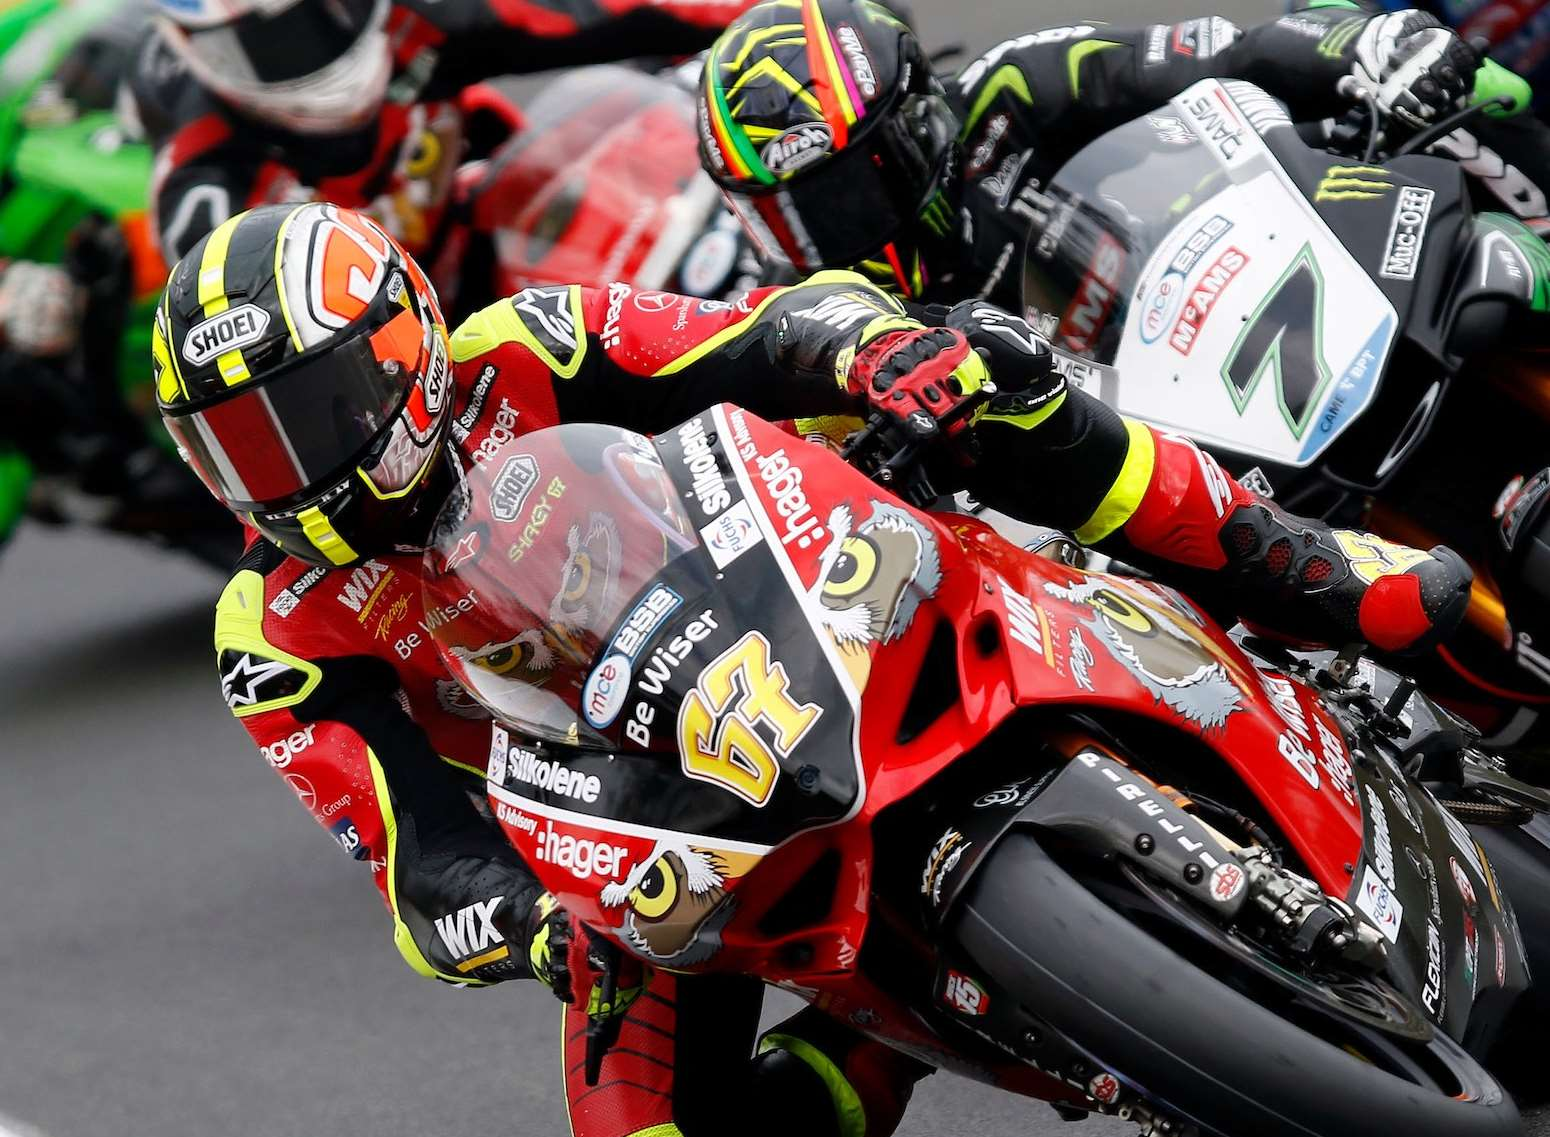 Shane Byrne tackles the Brands Hatch circuit in the British Superbikes Championship Picture: PSP Photography